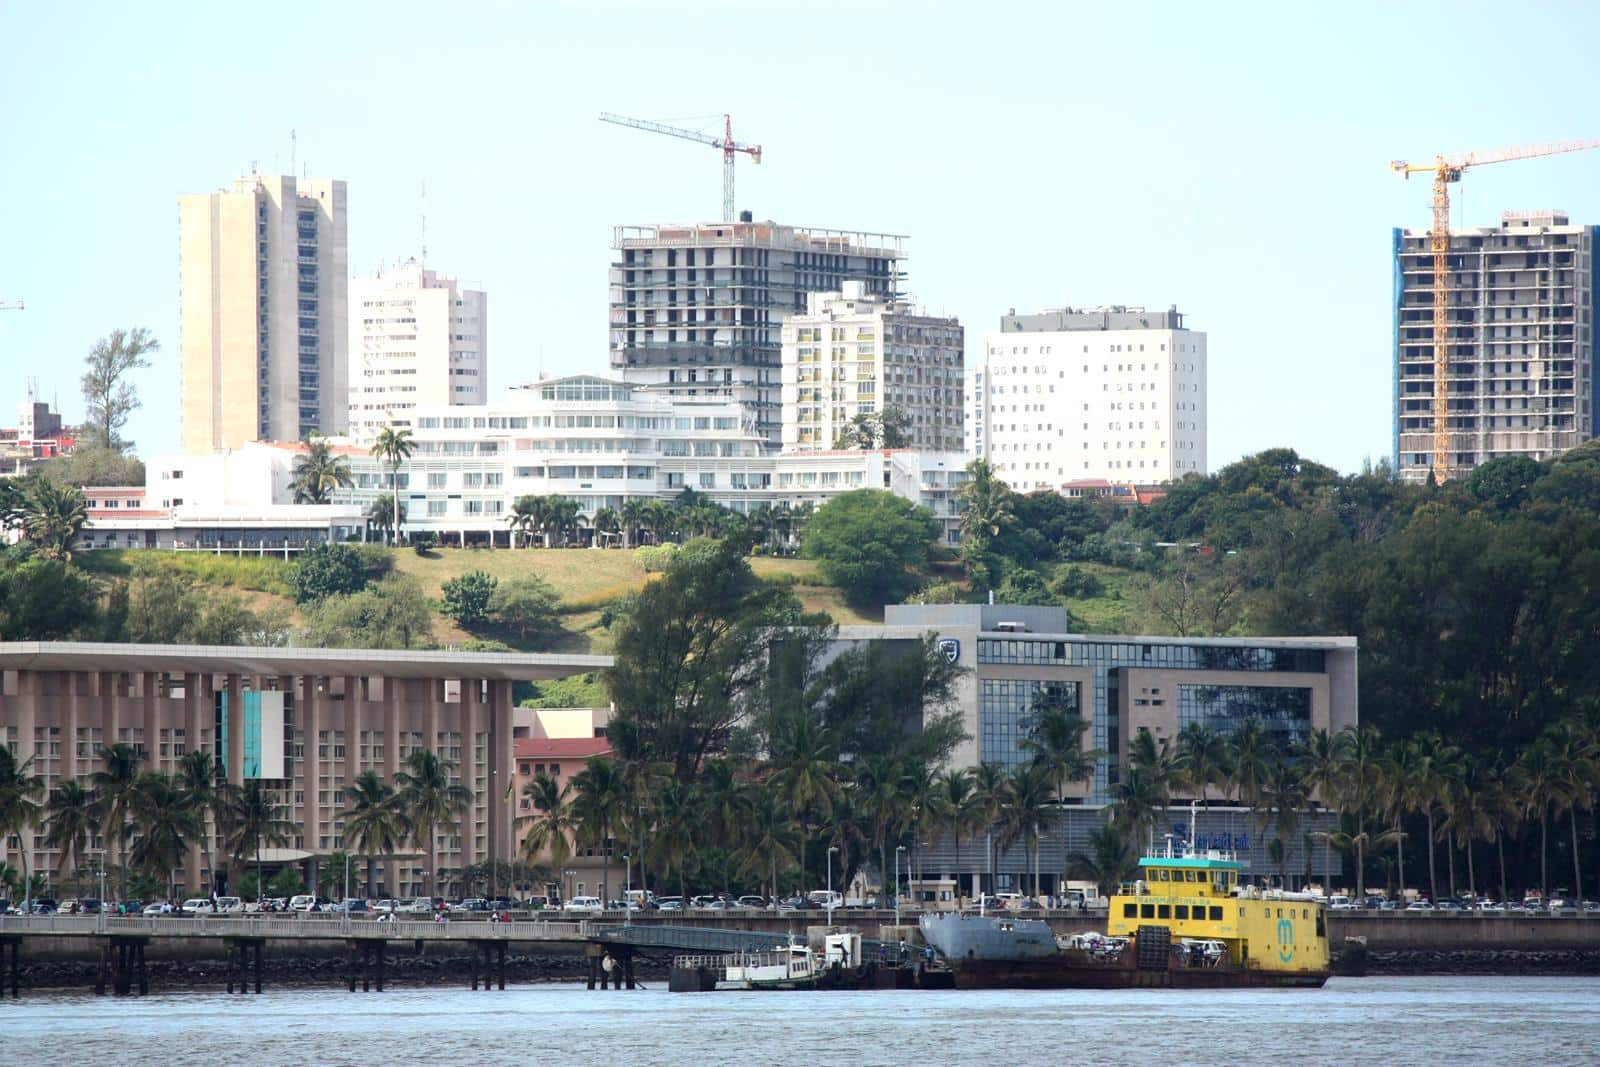 The Maputo skyline shows clear signs of development.